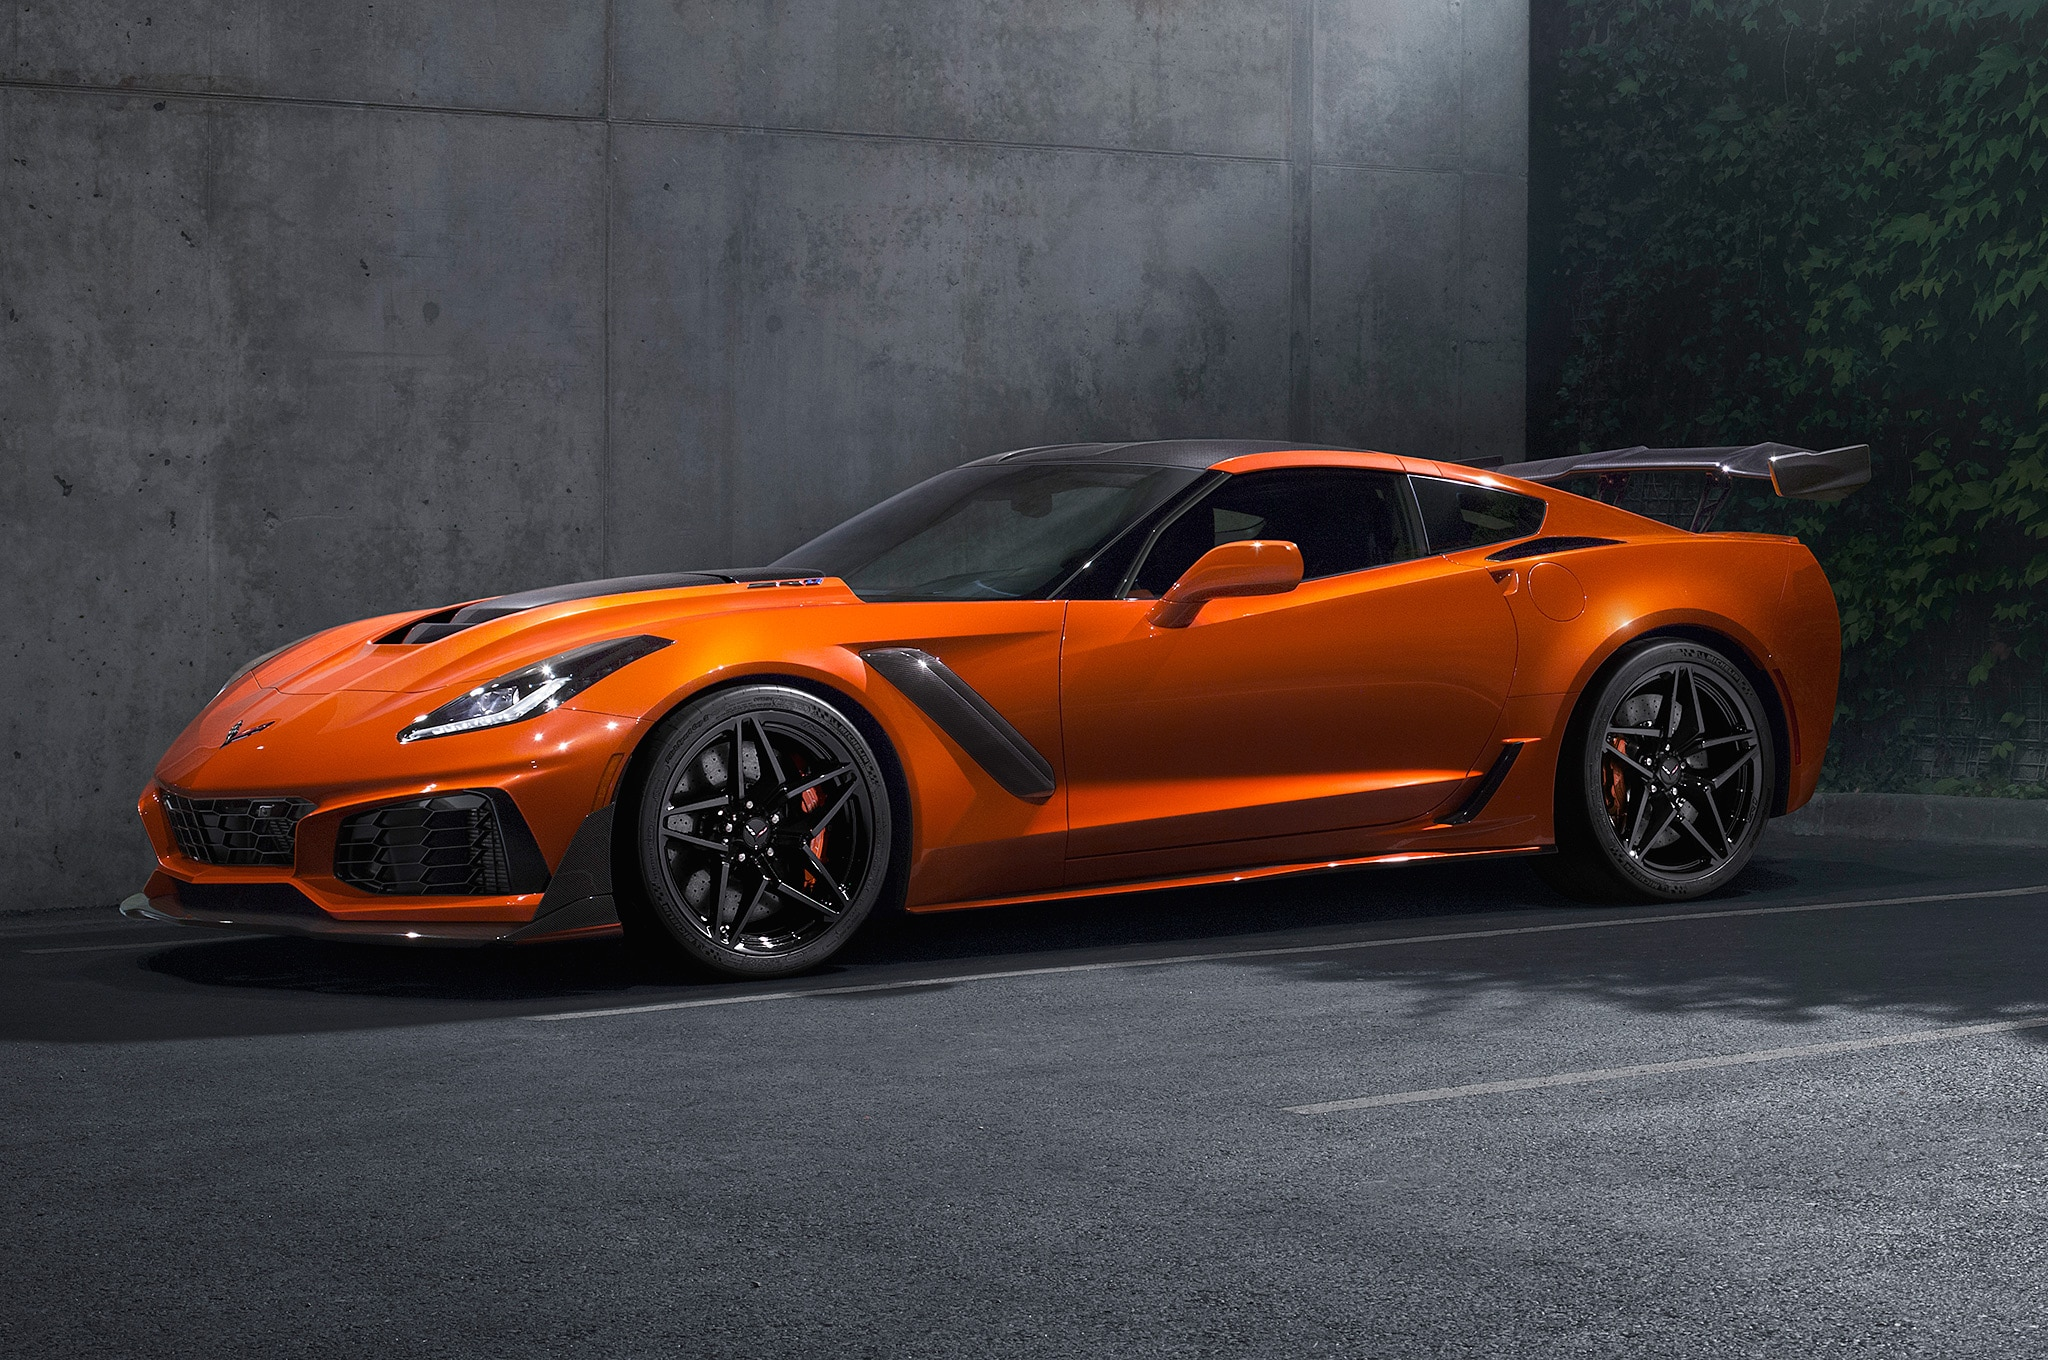 Chevrolet Corvette ZR1: The Most Powerful Corvette Model